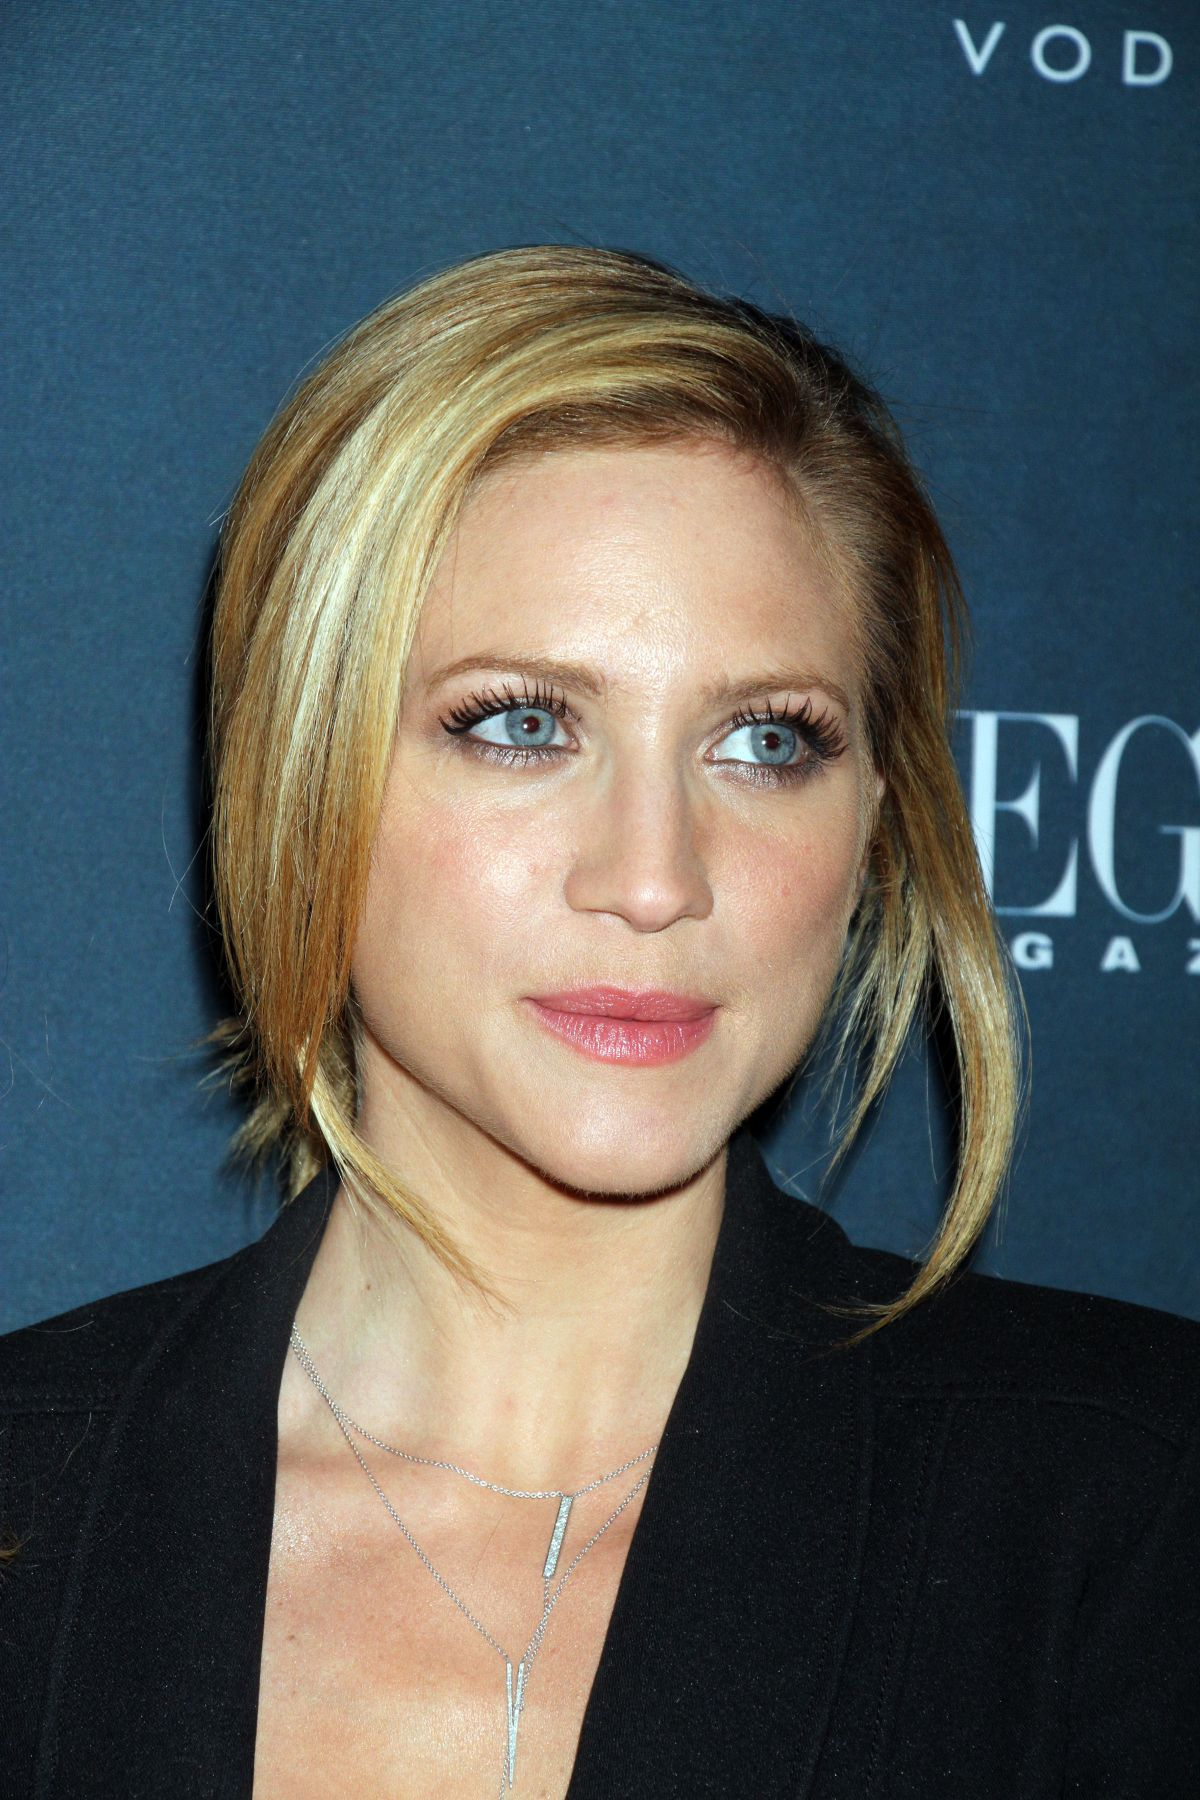 BRITTANY SNOW at Vegas Magazine's 12th Anniversary in ... Brittany Snow